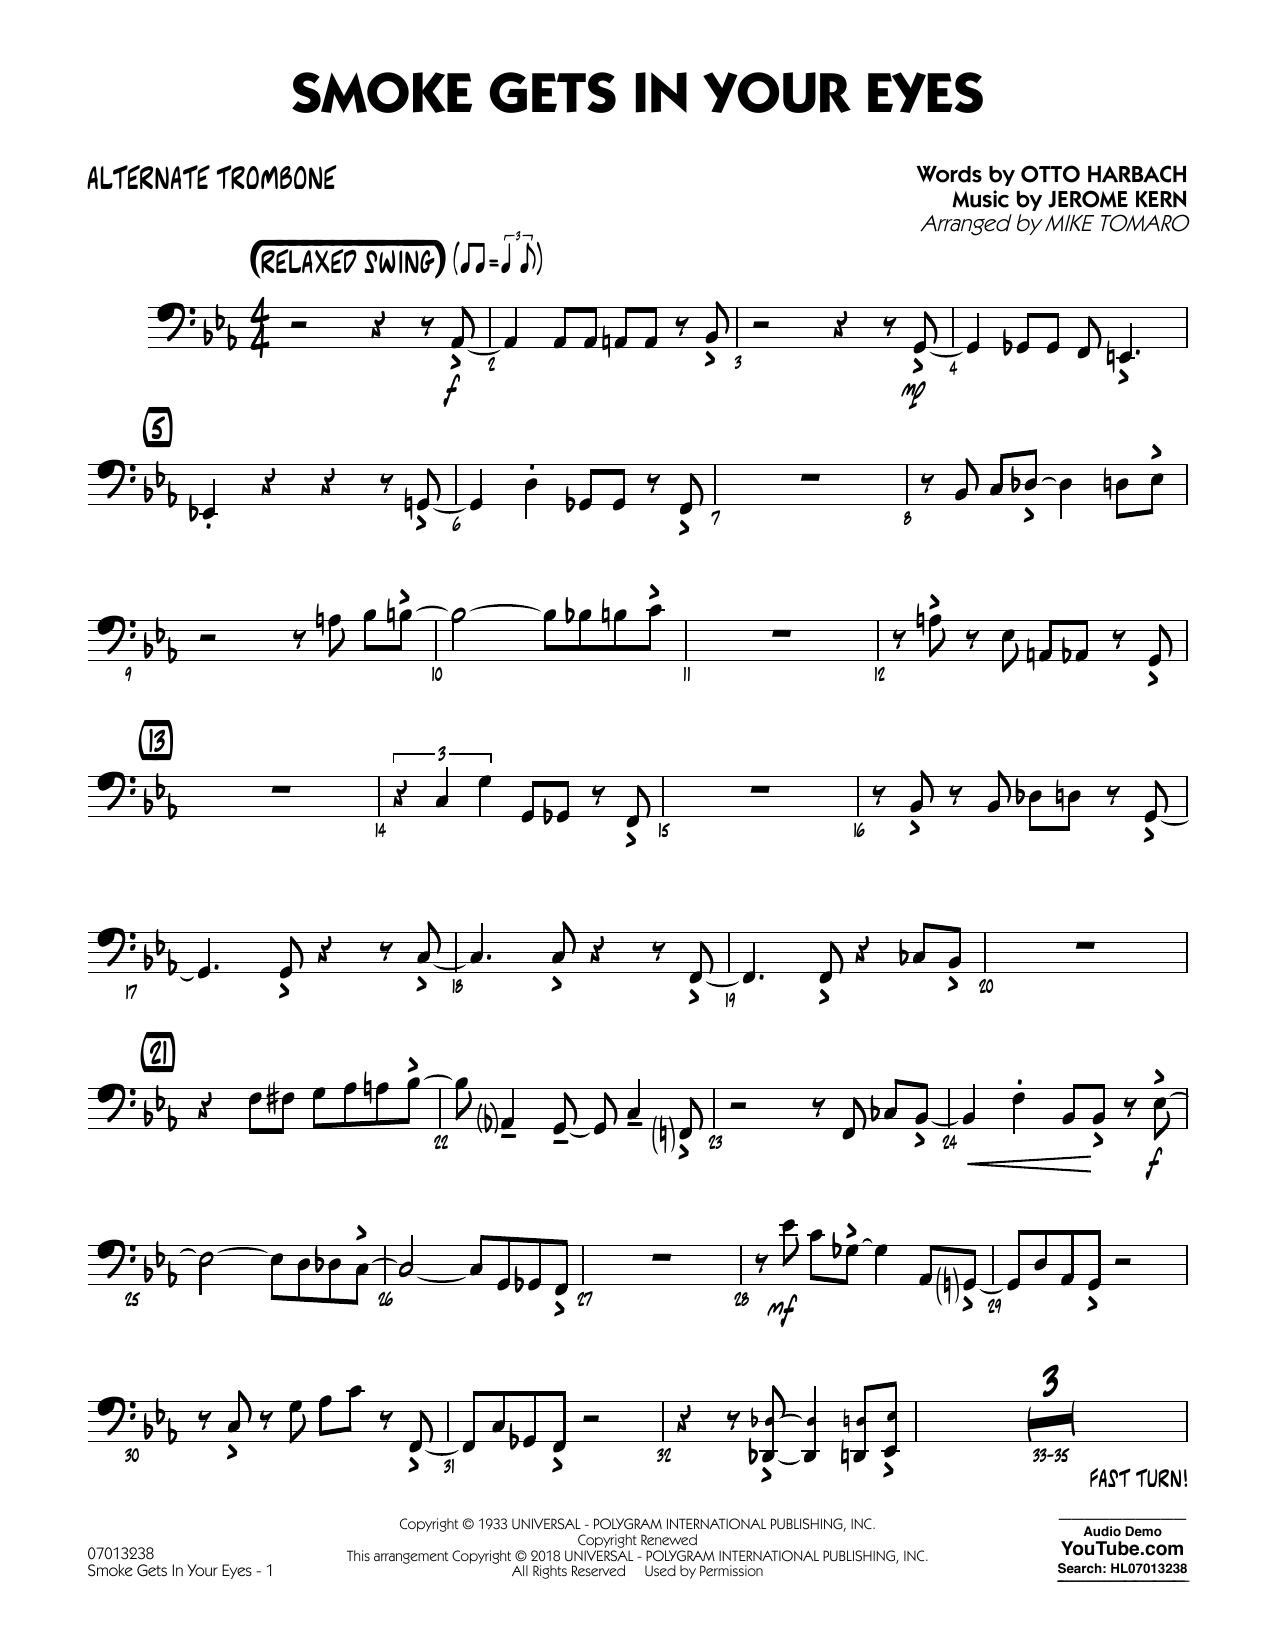 The Platters Smoke Gets In Your Eyes (arr. Mike Tomaro) - Alternate Trombone sheet music notes and chords. Download Printable PDF.